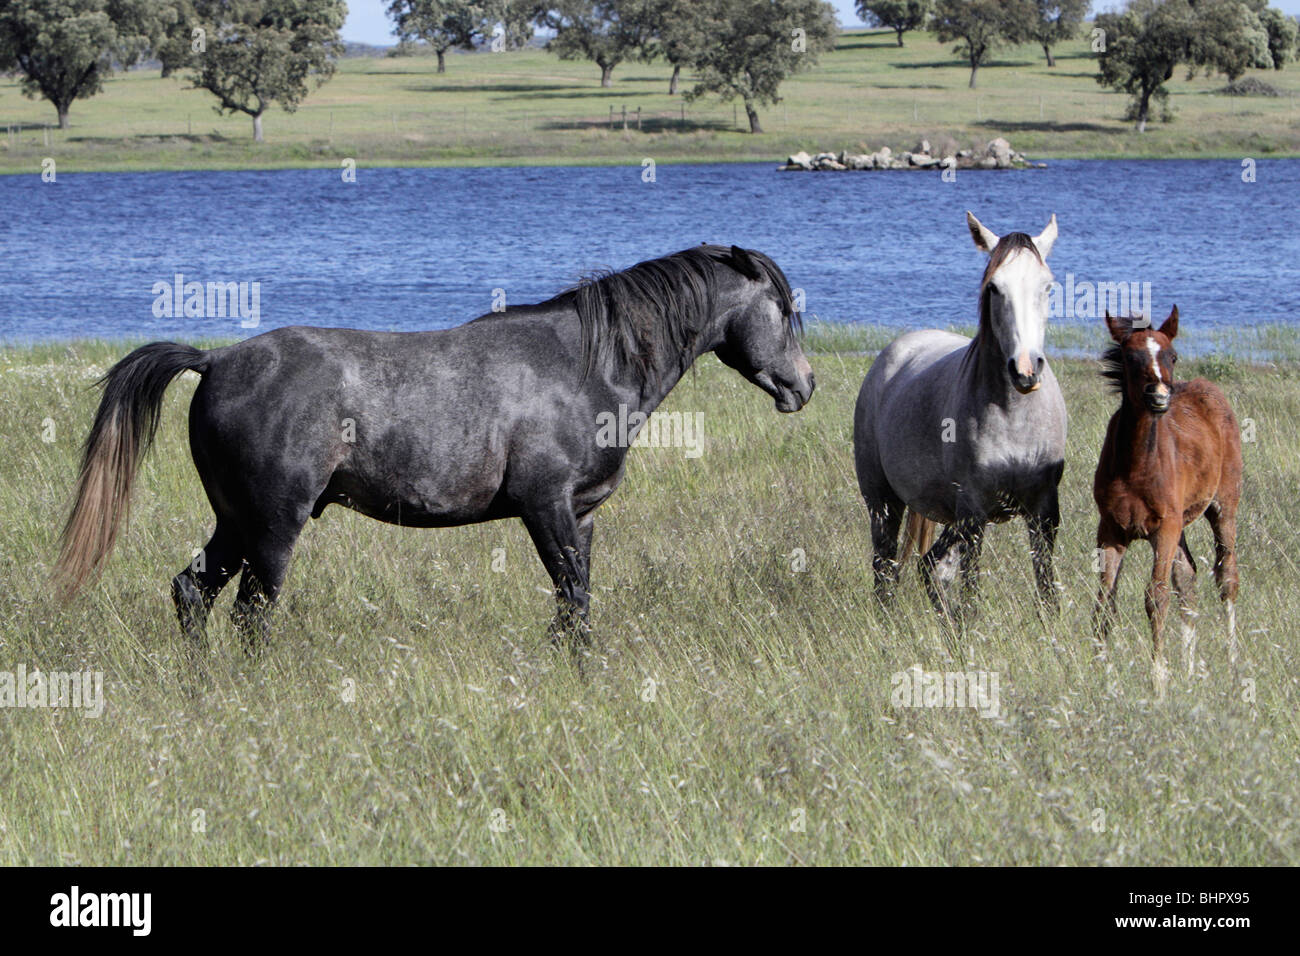 Arabic Horses, stallion, mare and foal on meadow, region of Alentejo, Portugal - Stock Image